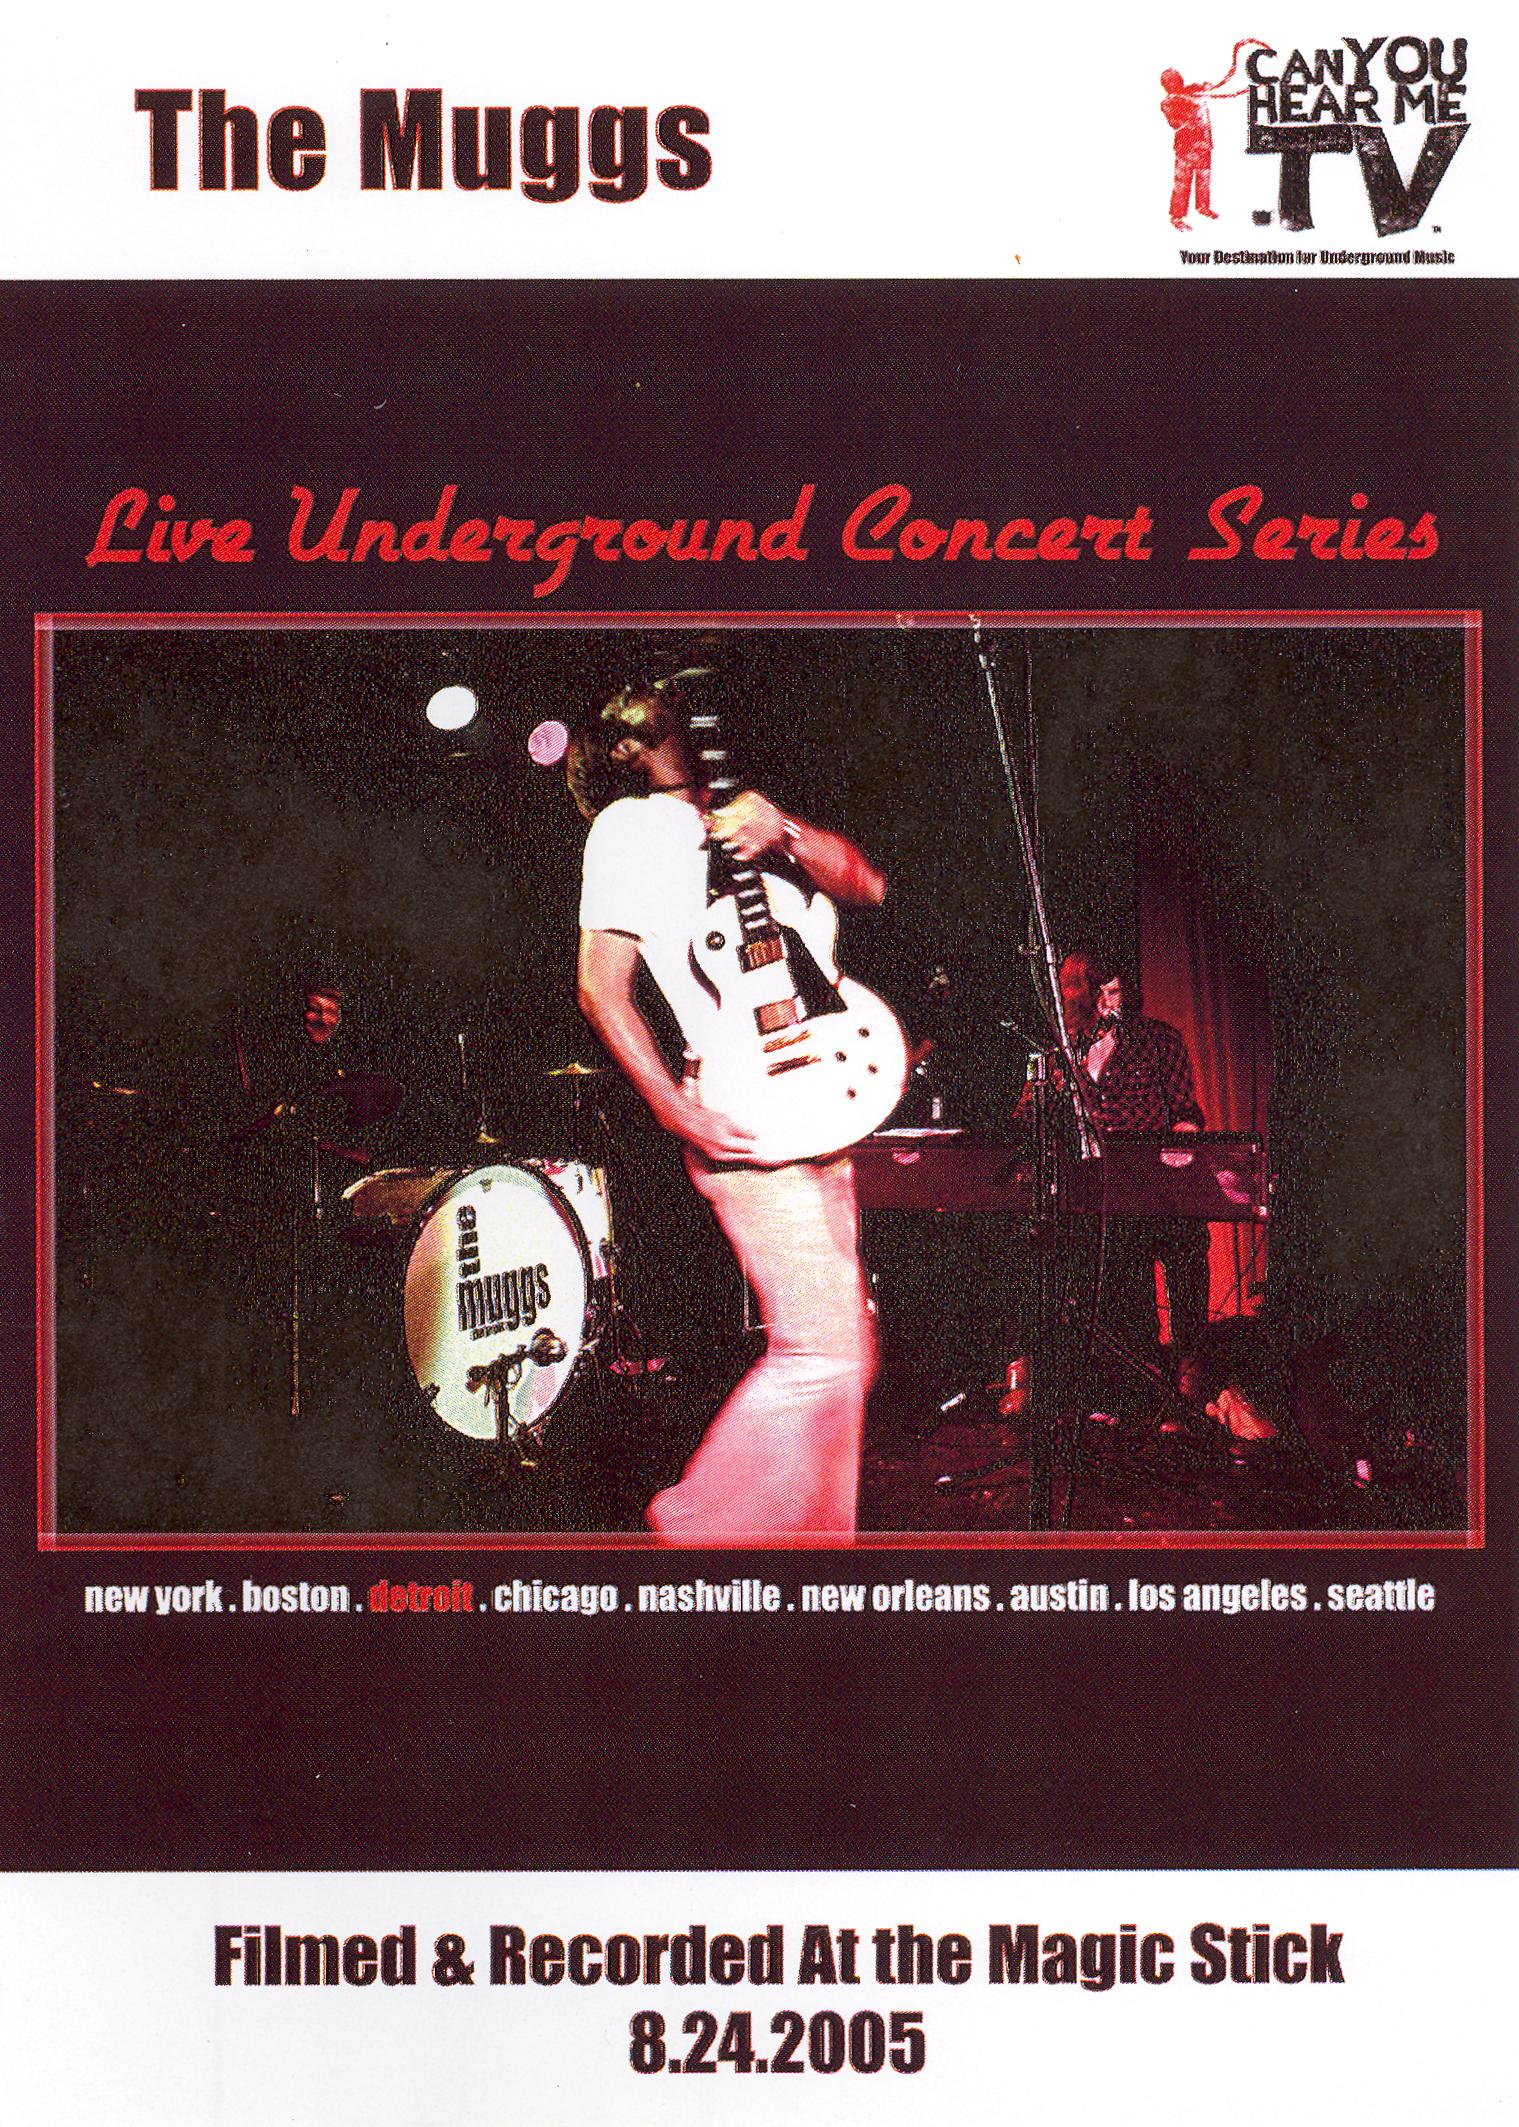 Live Underground Concert Series: The Muggs - Detroit, Filmed & Recorded at the Magic Stick 8.24.05